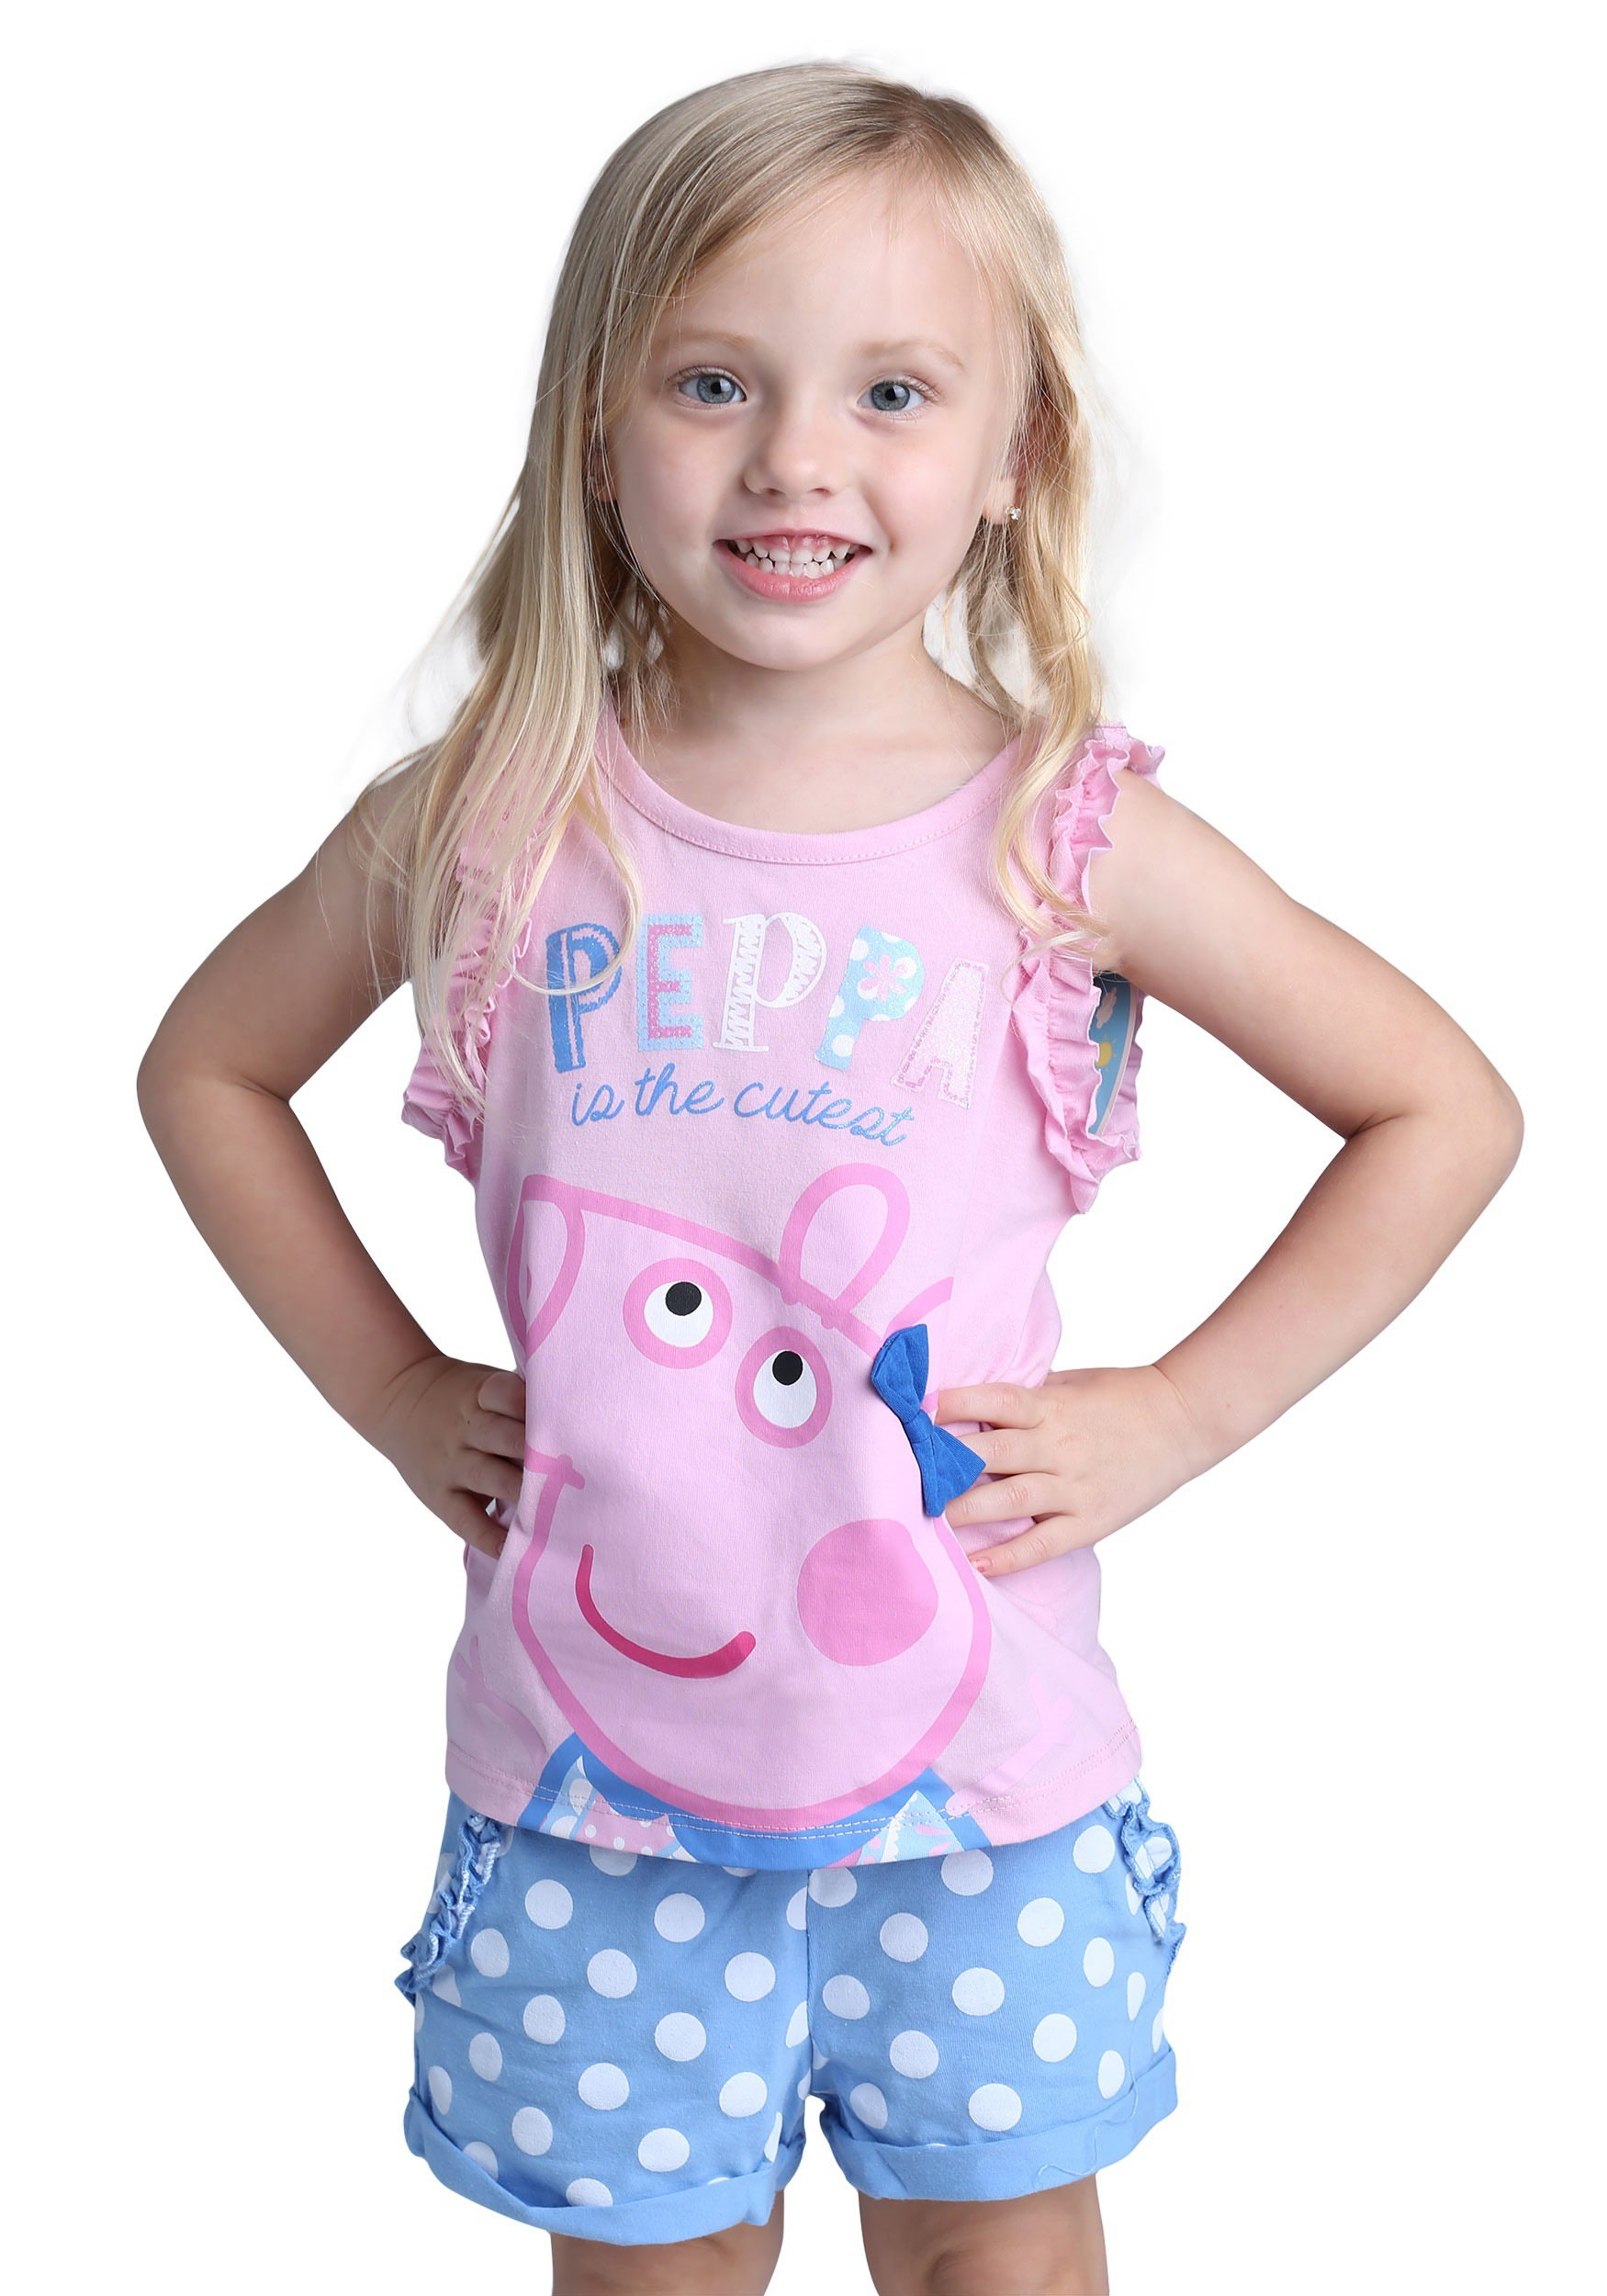 Peppa Pig Tank and Shorts Set for Toddlers